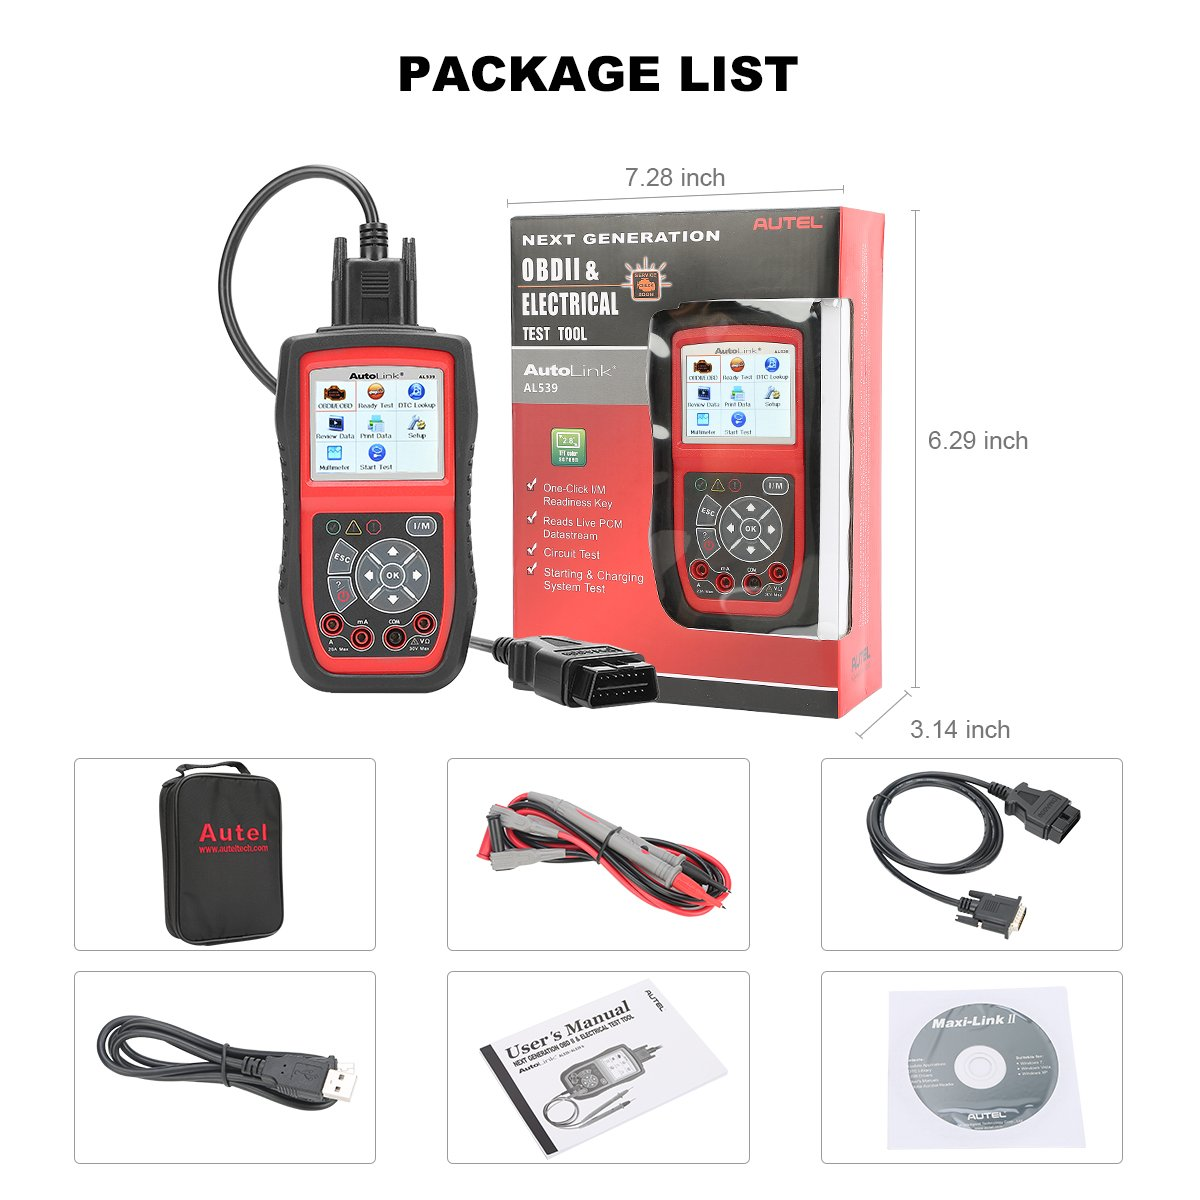 Autel AL539 Code Reader Scanner Scan Tool Car Electrical Tester with Full OBD2 Diagnoses and Avometer Function(Upgraded Version of AL519) by Autel (Image #7)